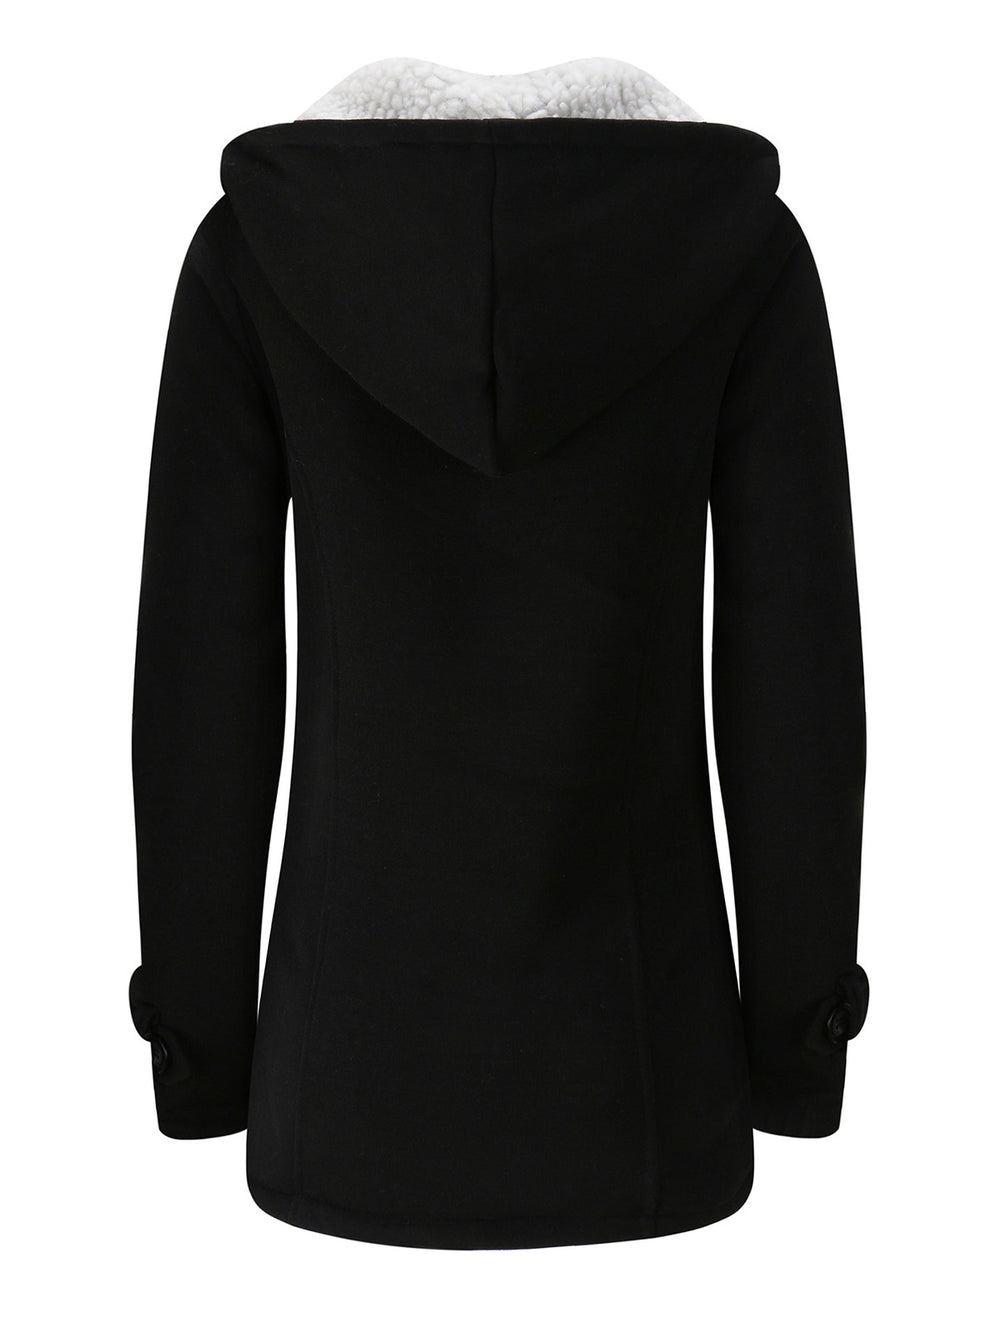 Pockets Solid Casual Plus Size Coats